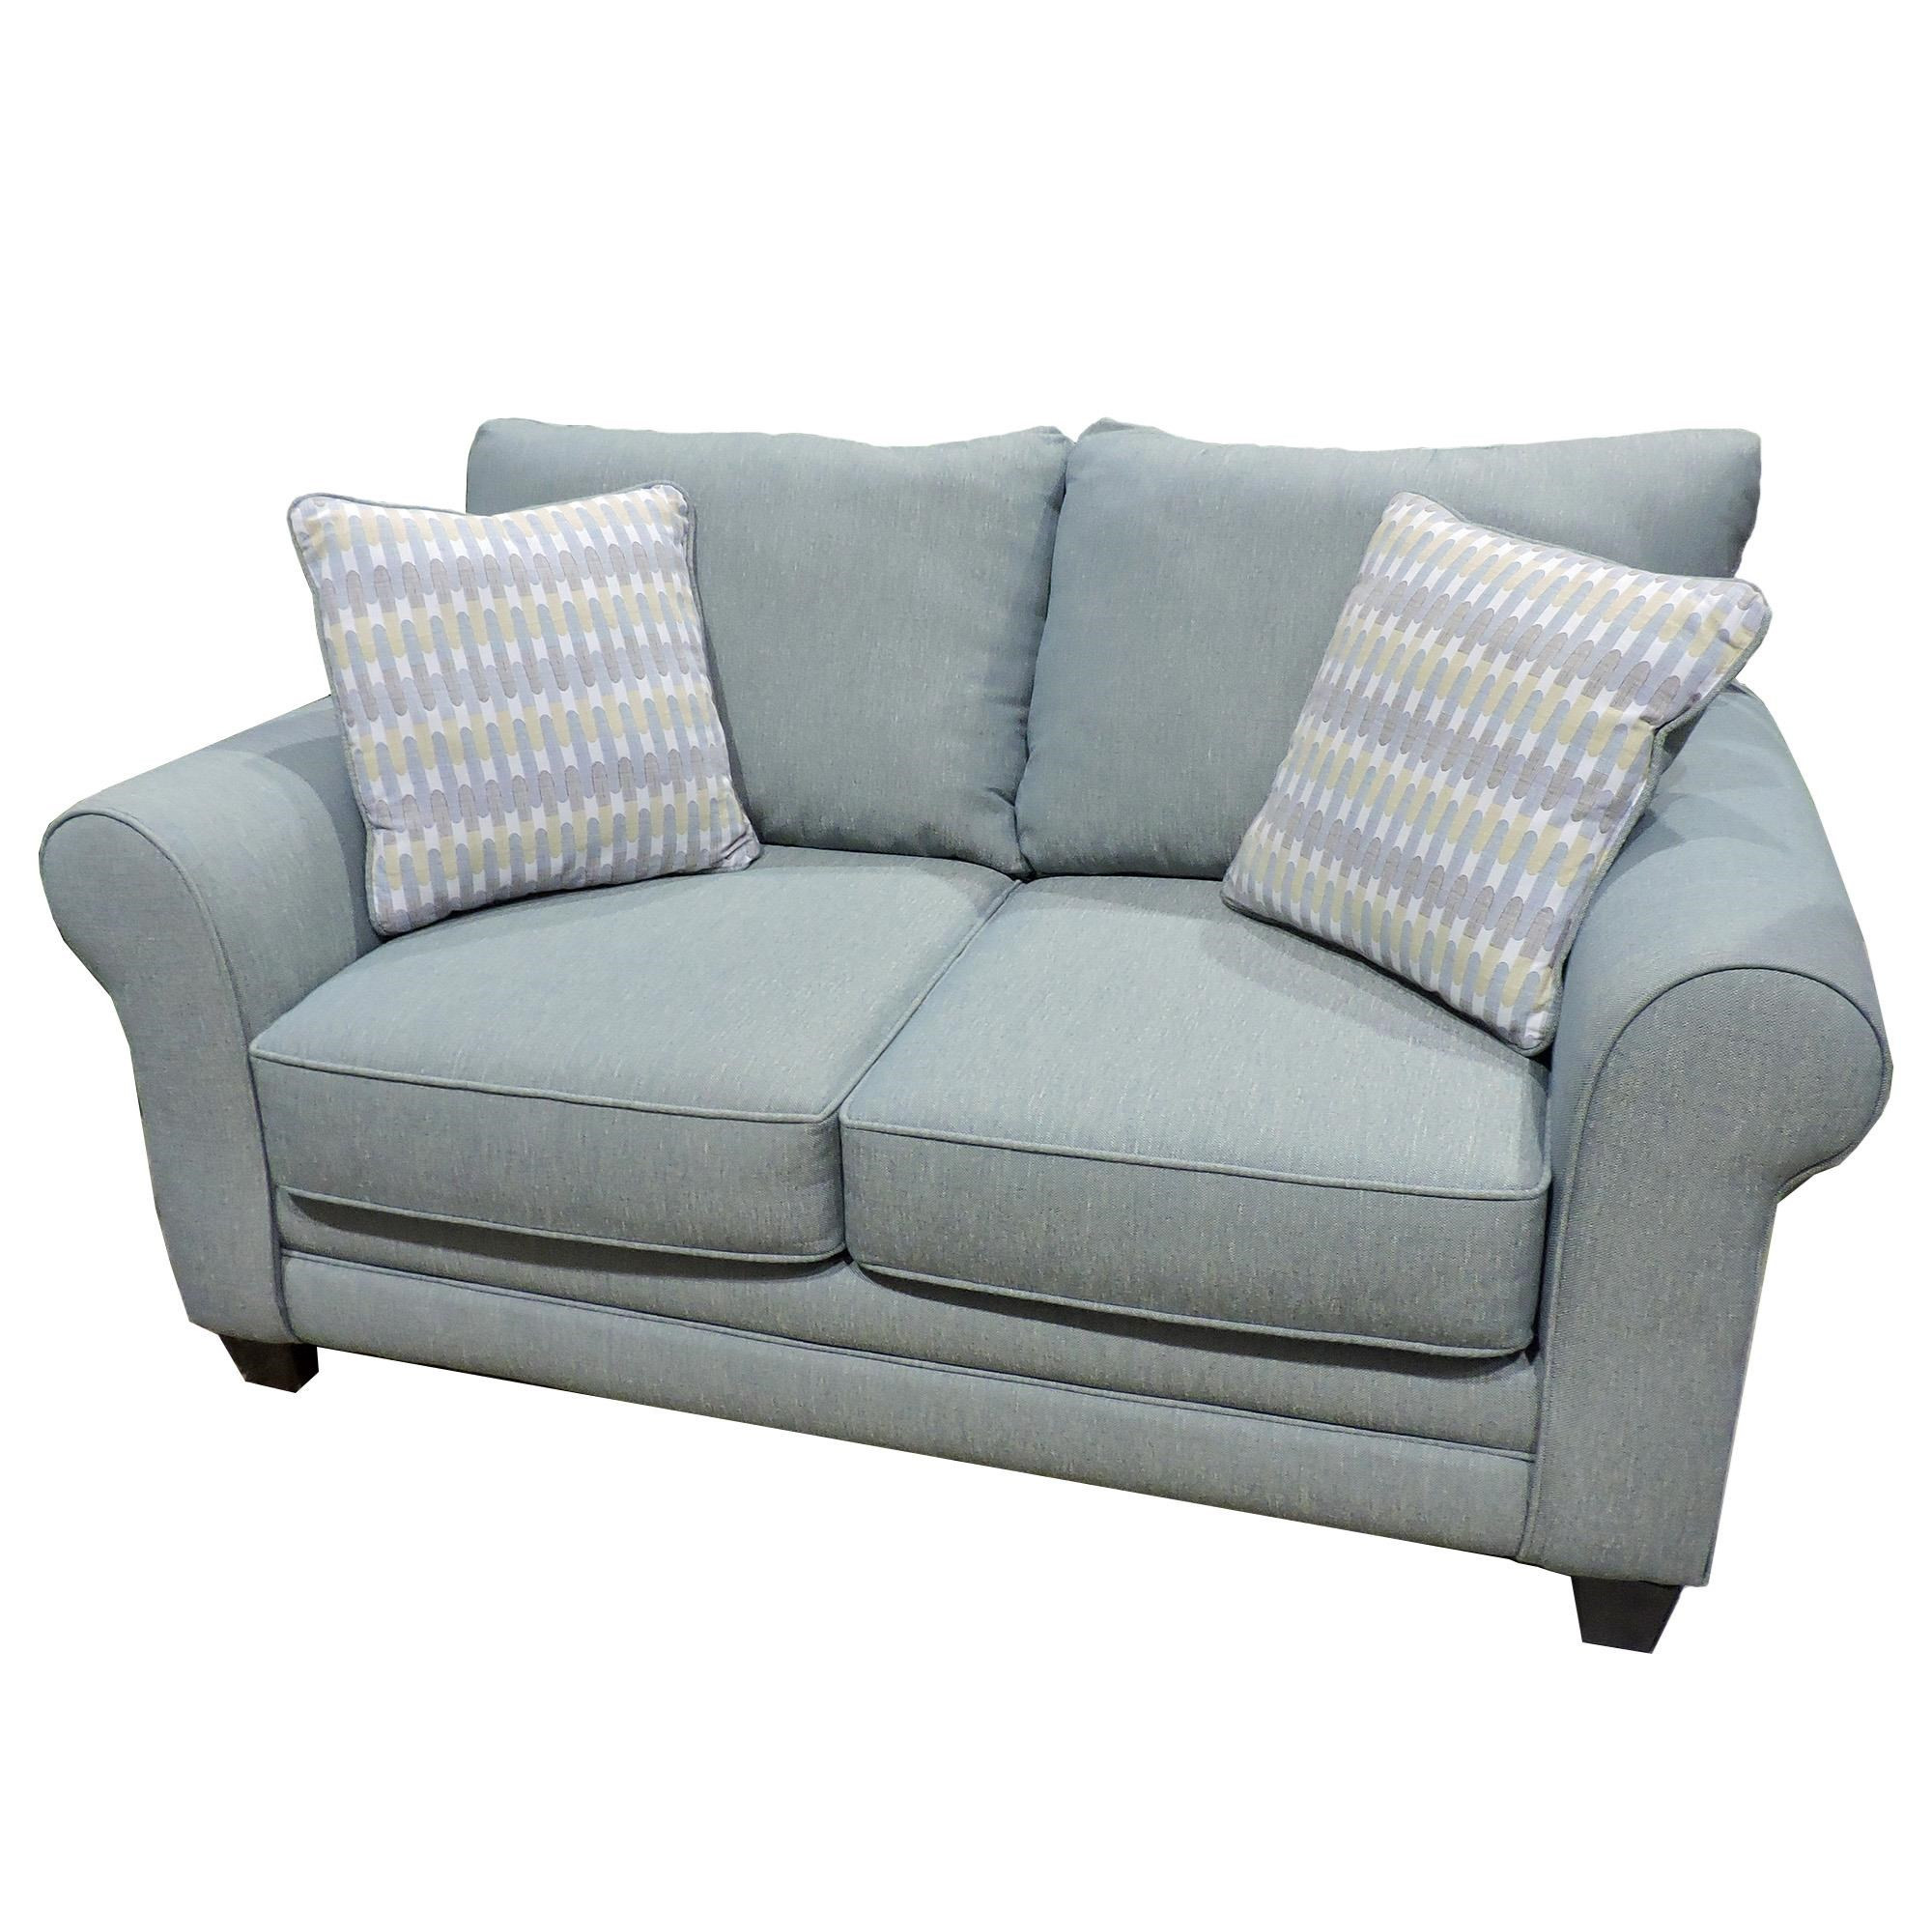 Fusion Furniture Candy Loveseat with Accent Pillows - Item Number: 1141